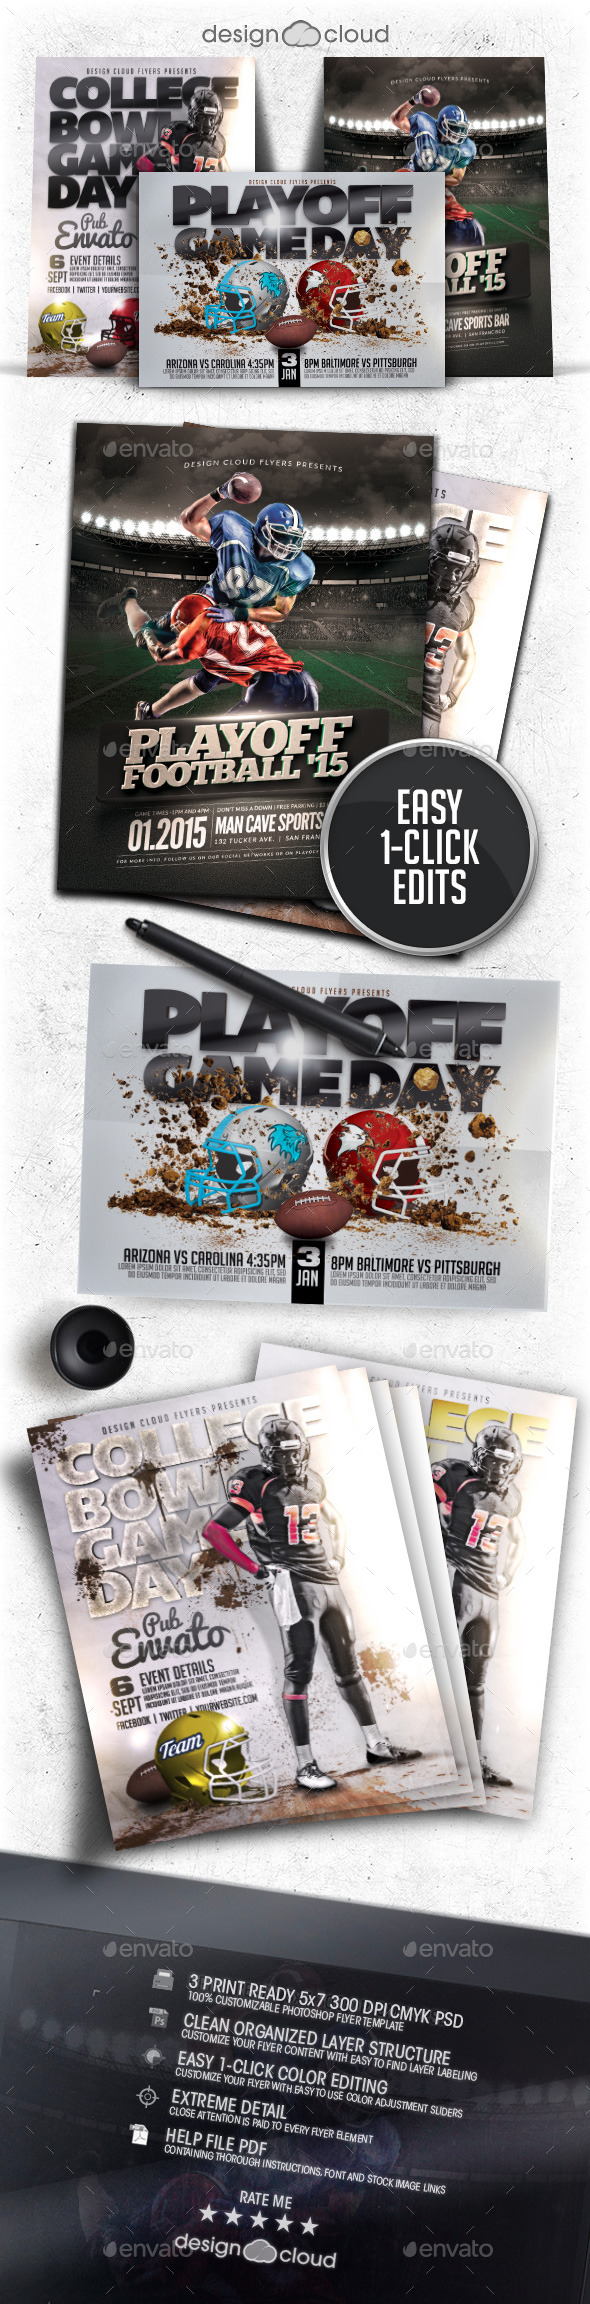 Playoff Football Flyer / Poster Template Bundle - Sports Events